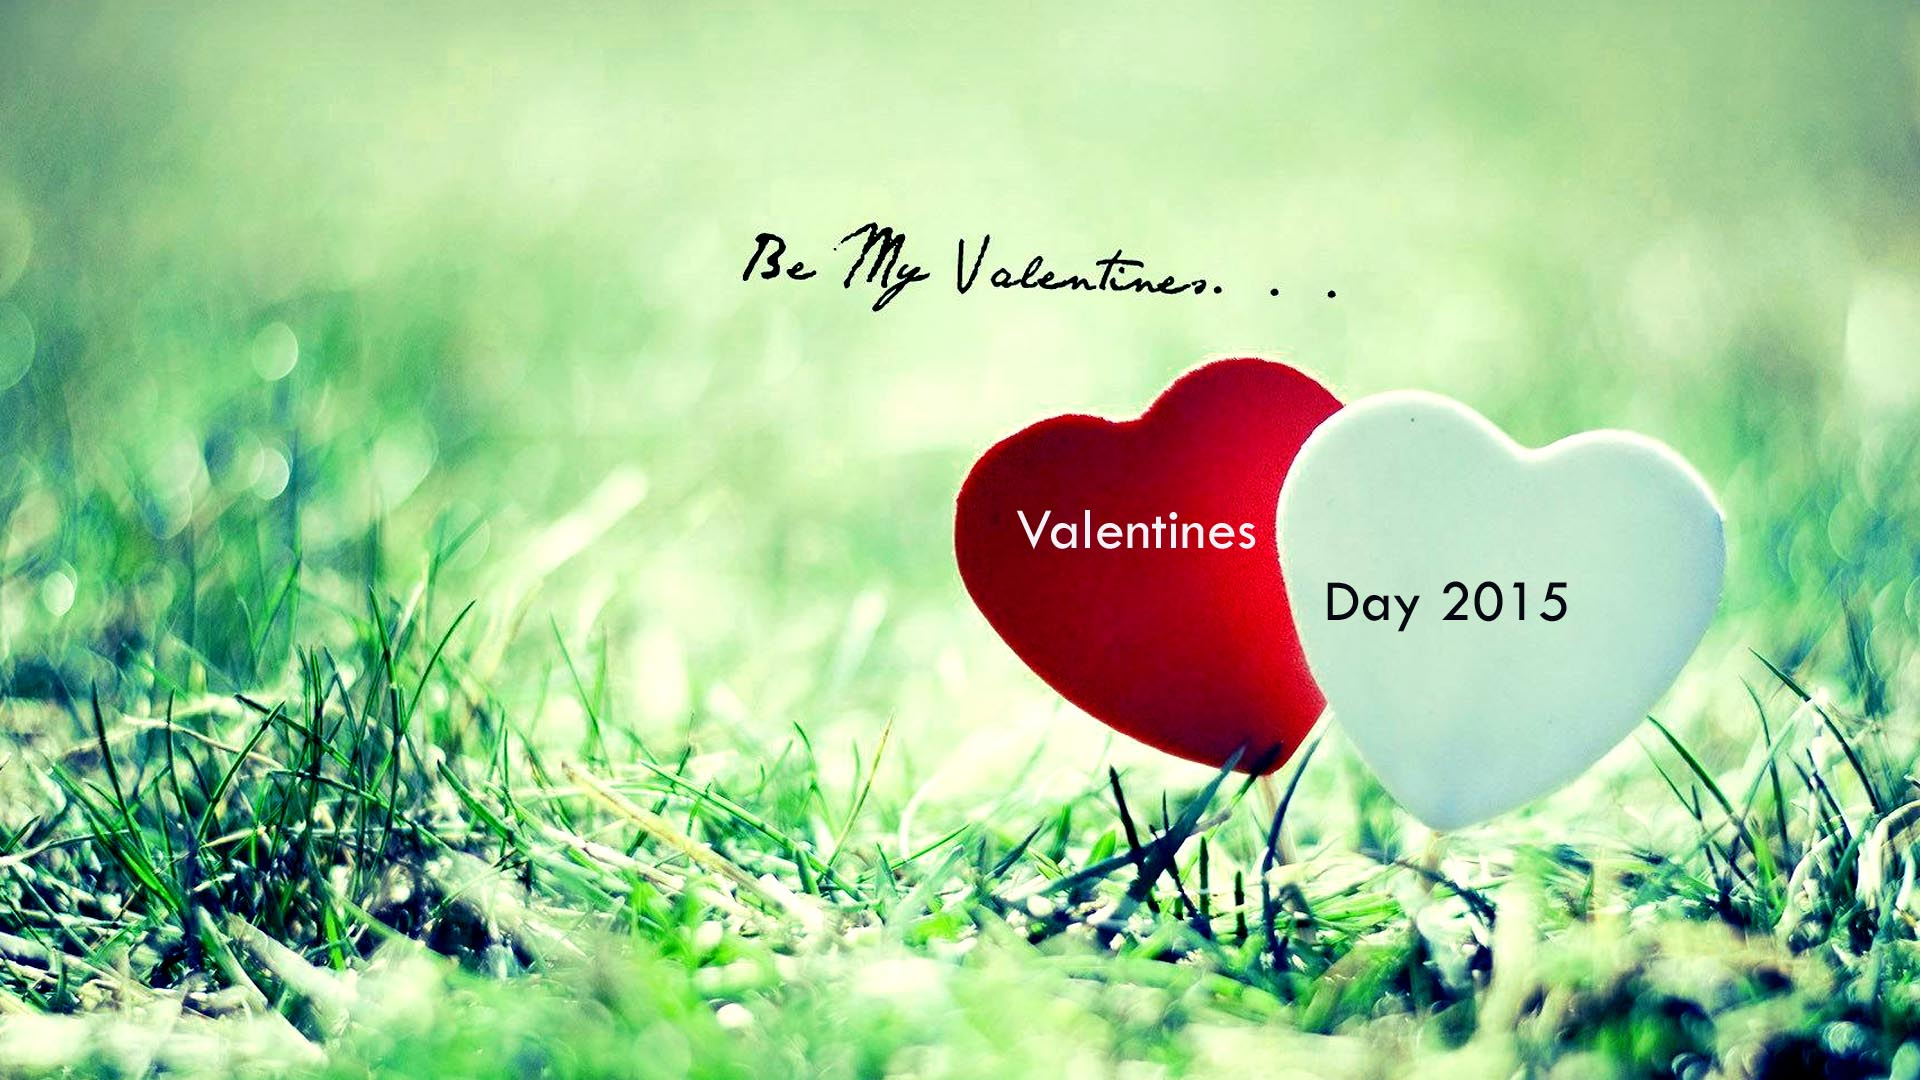 Valentine Day Wallpapers 2015 Wallpaper Cave – Valentine Card 2015